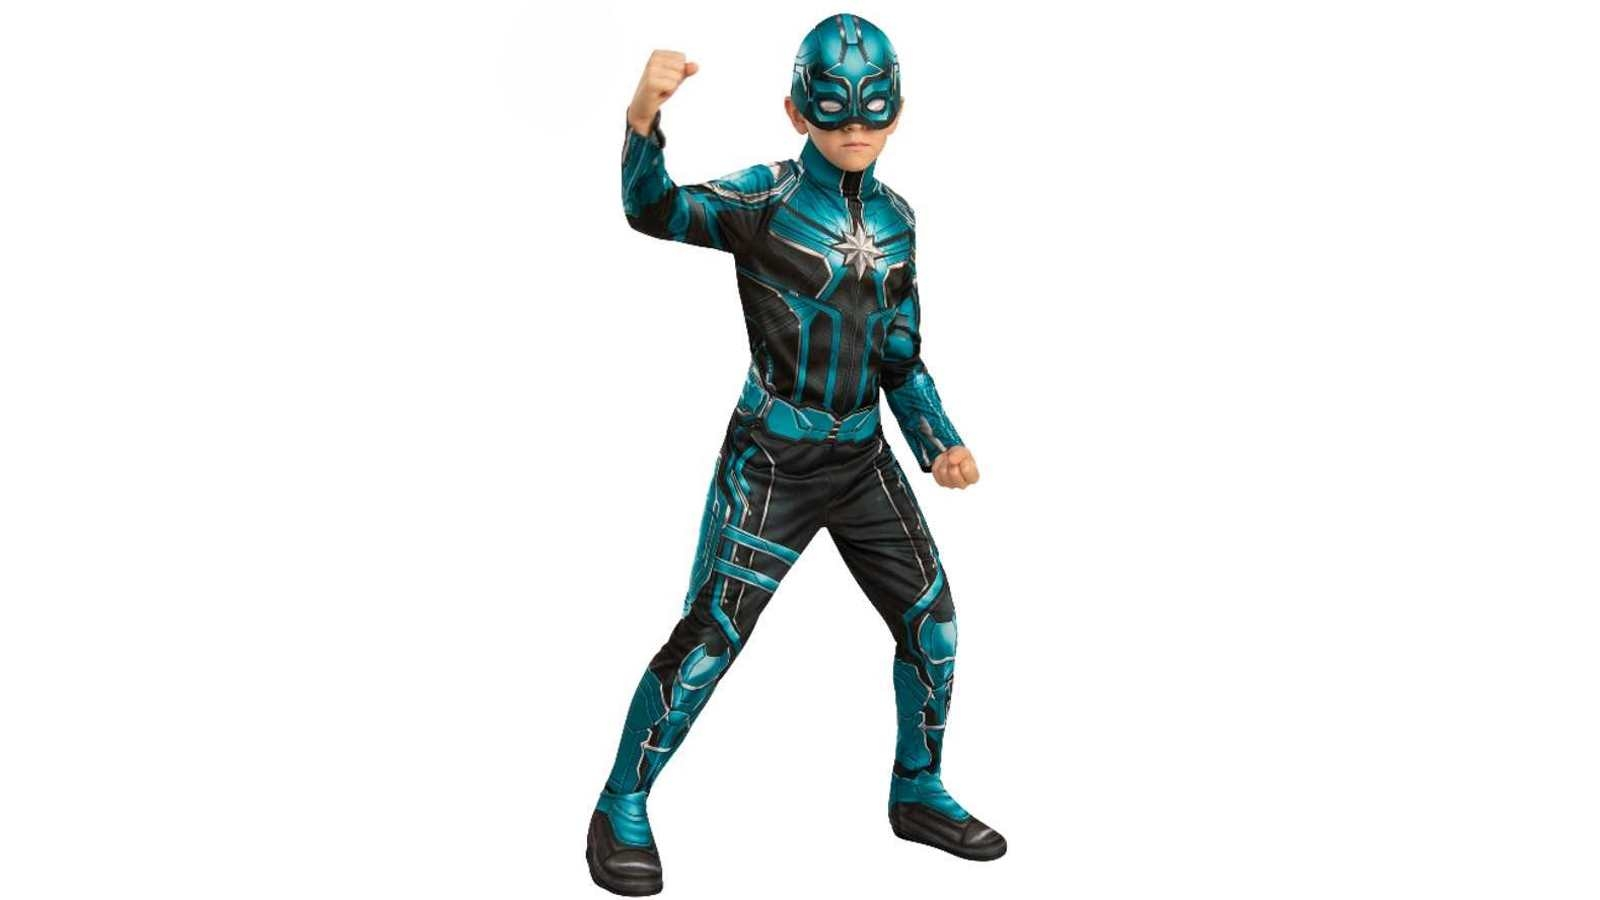 Buy Yon Rogg Classic Captain Marvel 8 10 Years Old Child Costume Large Harvey Norman Au Justice league of america 166 comic book. yon rogg classic captain marvel 8 10 years old child costume large